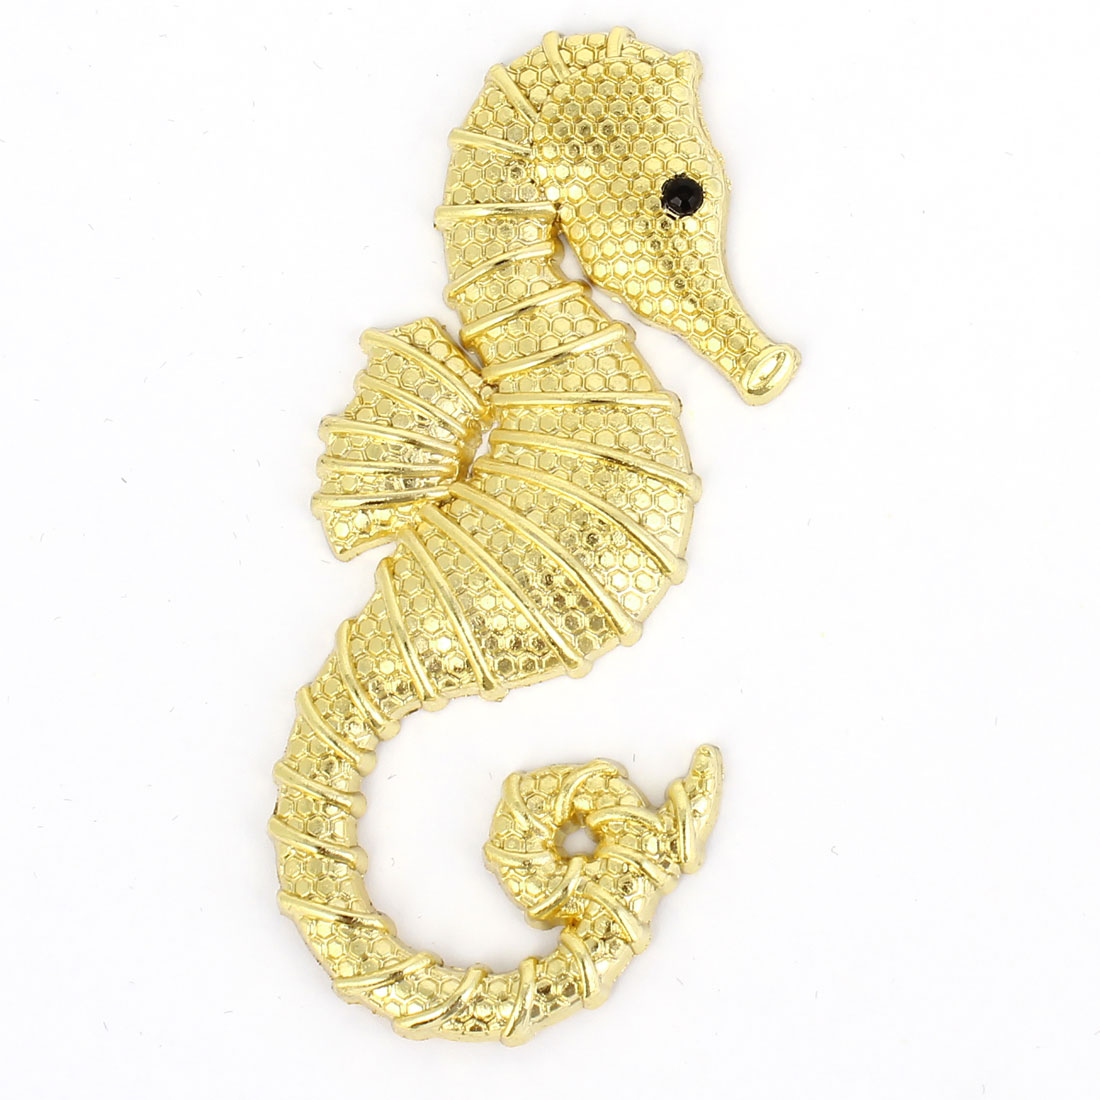 Car Gold Tone Sea Horse Shaped Adhesive Emblem Badge Sticker